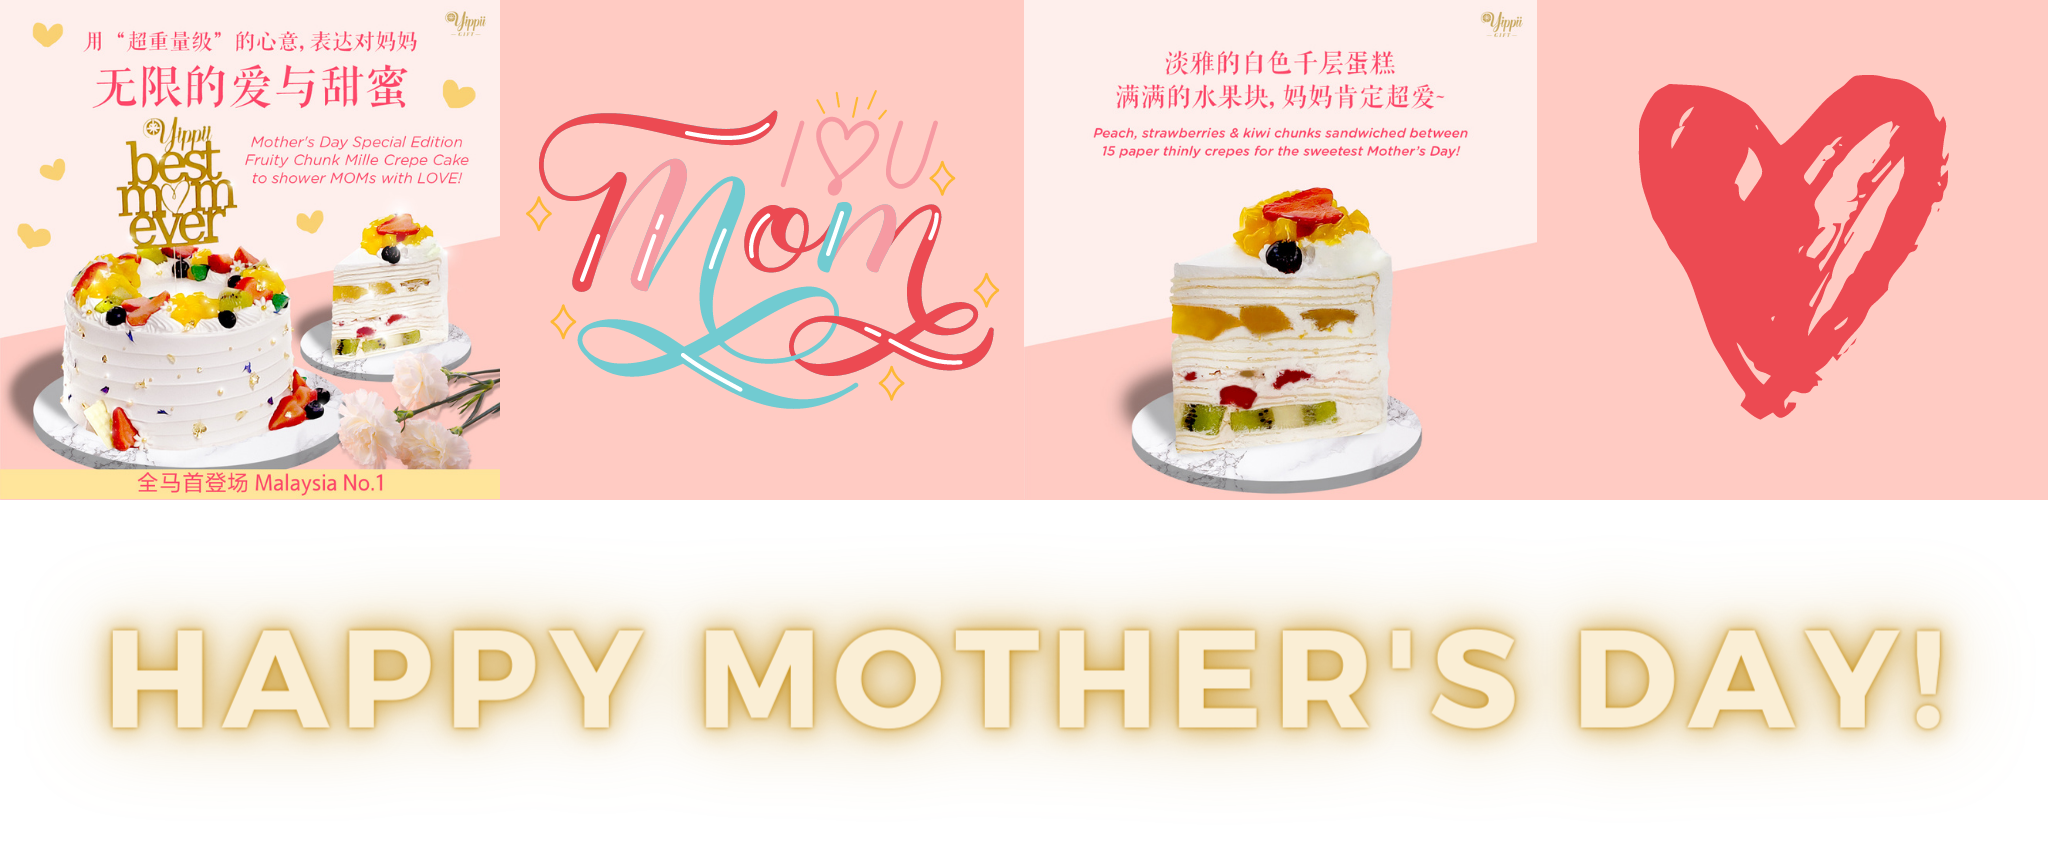 Mother's Day Fruity Chunk Mille Crepe Cake